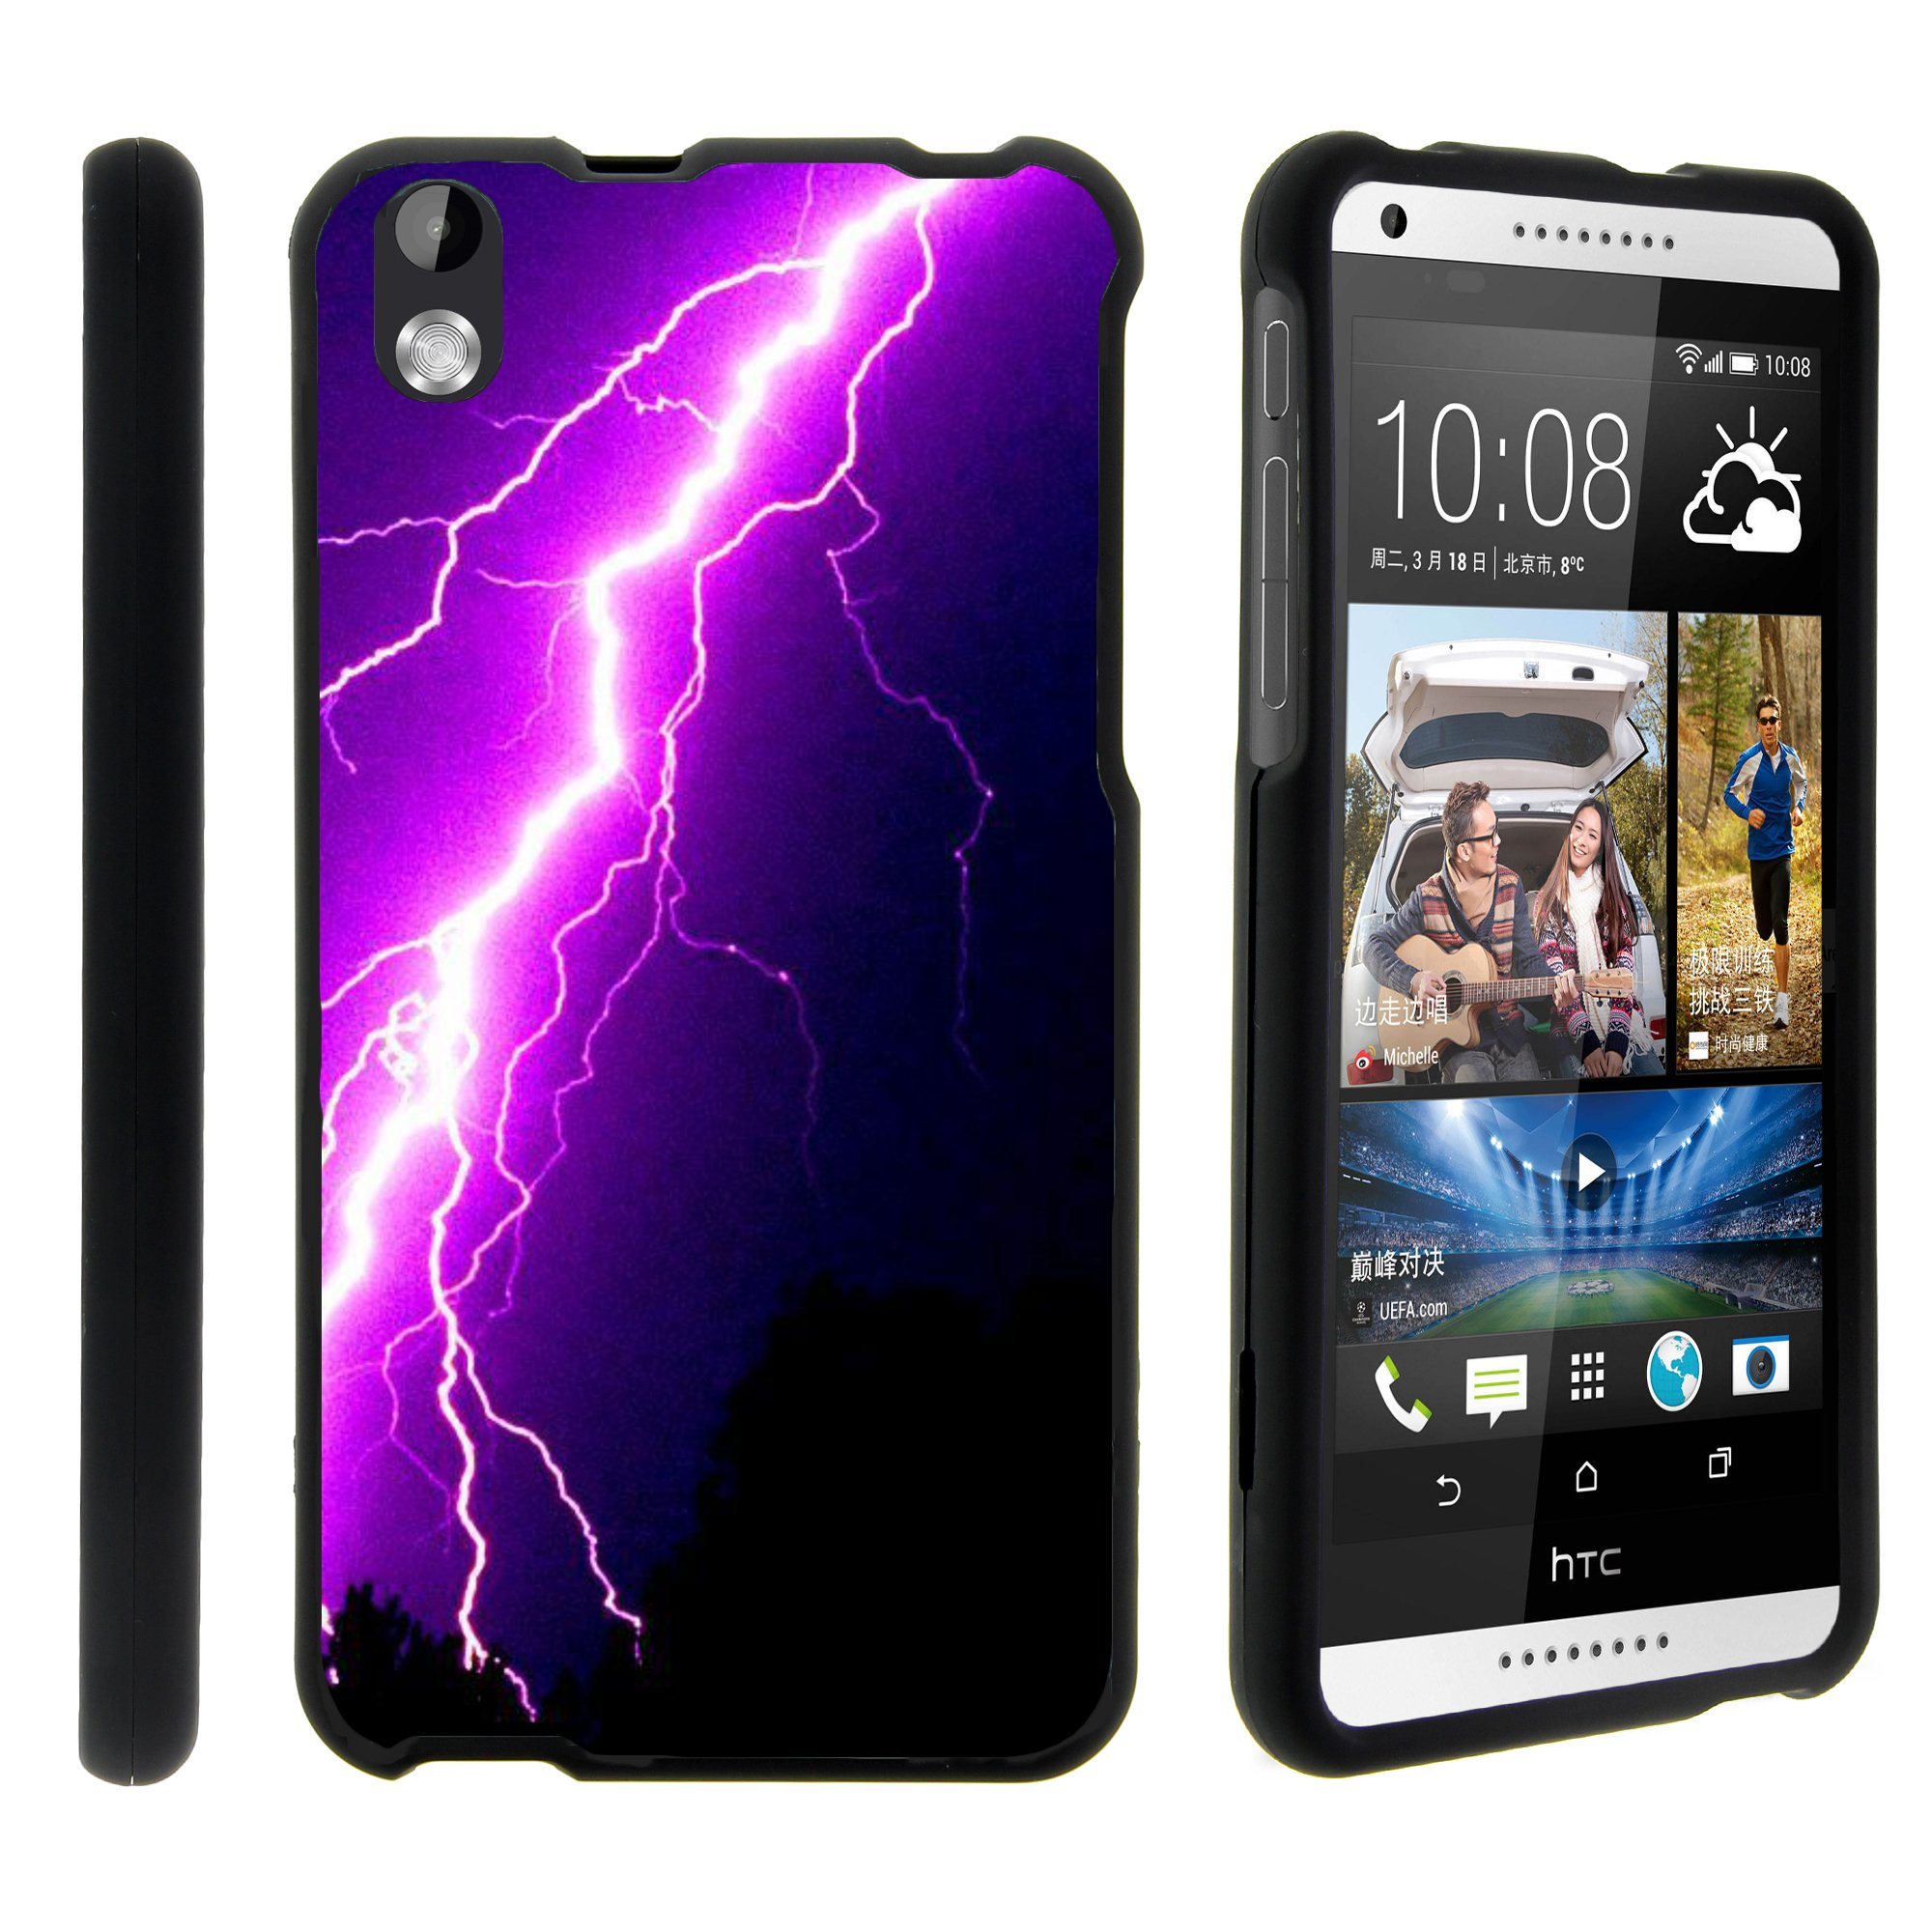 HTC Desire 816, [SNAP SHELL][Matte Black] 2 Piece Snap On Rubberized Hard Plastic Cell Phone Case with Exclusive Art - Purple Lightning Bolt